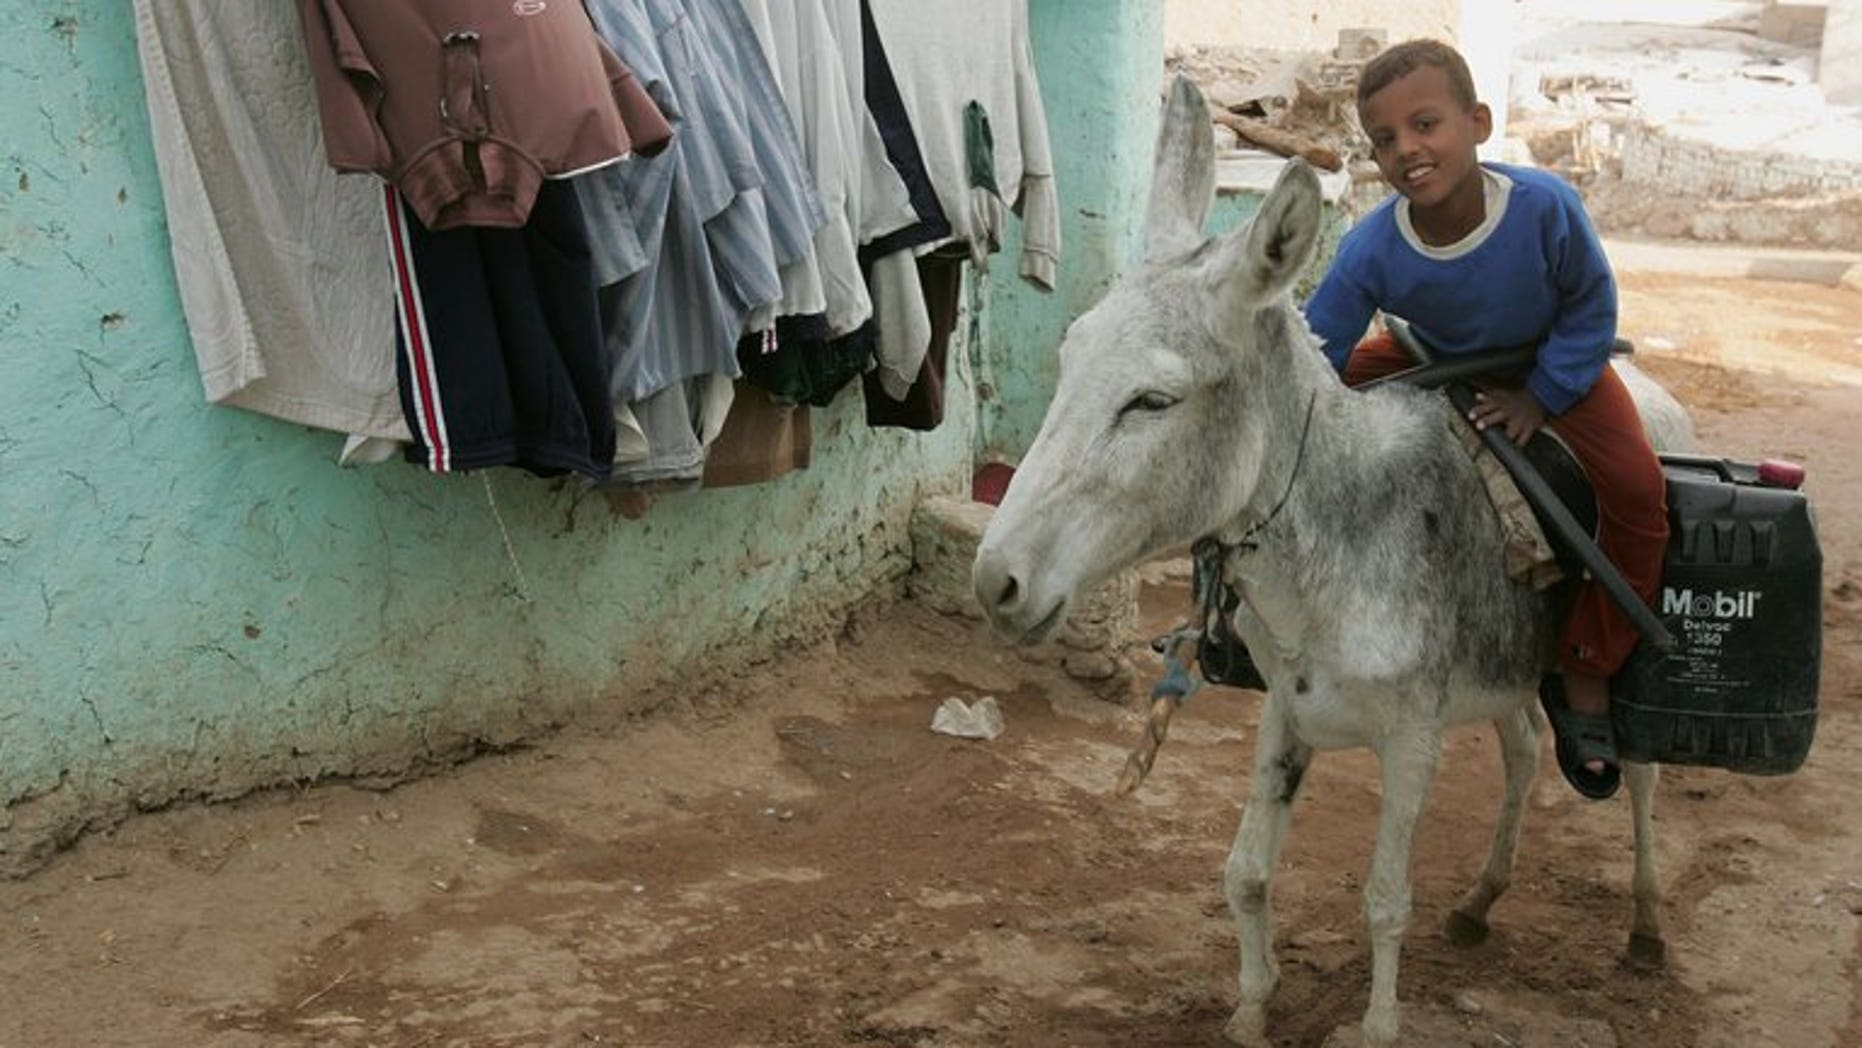 An Egyptian boy on a donkey goes up a street in the town of al-Qurna on December 01, 2006.